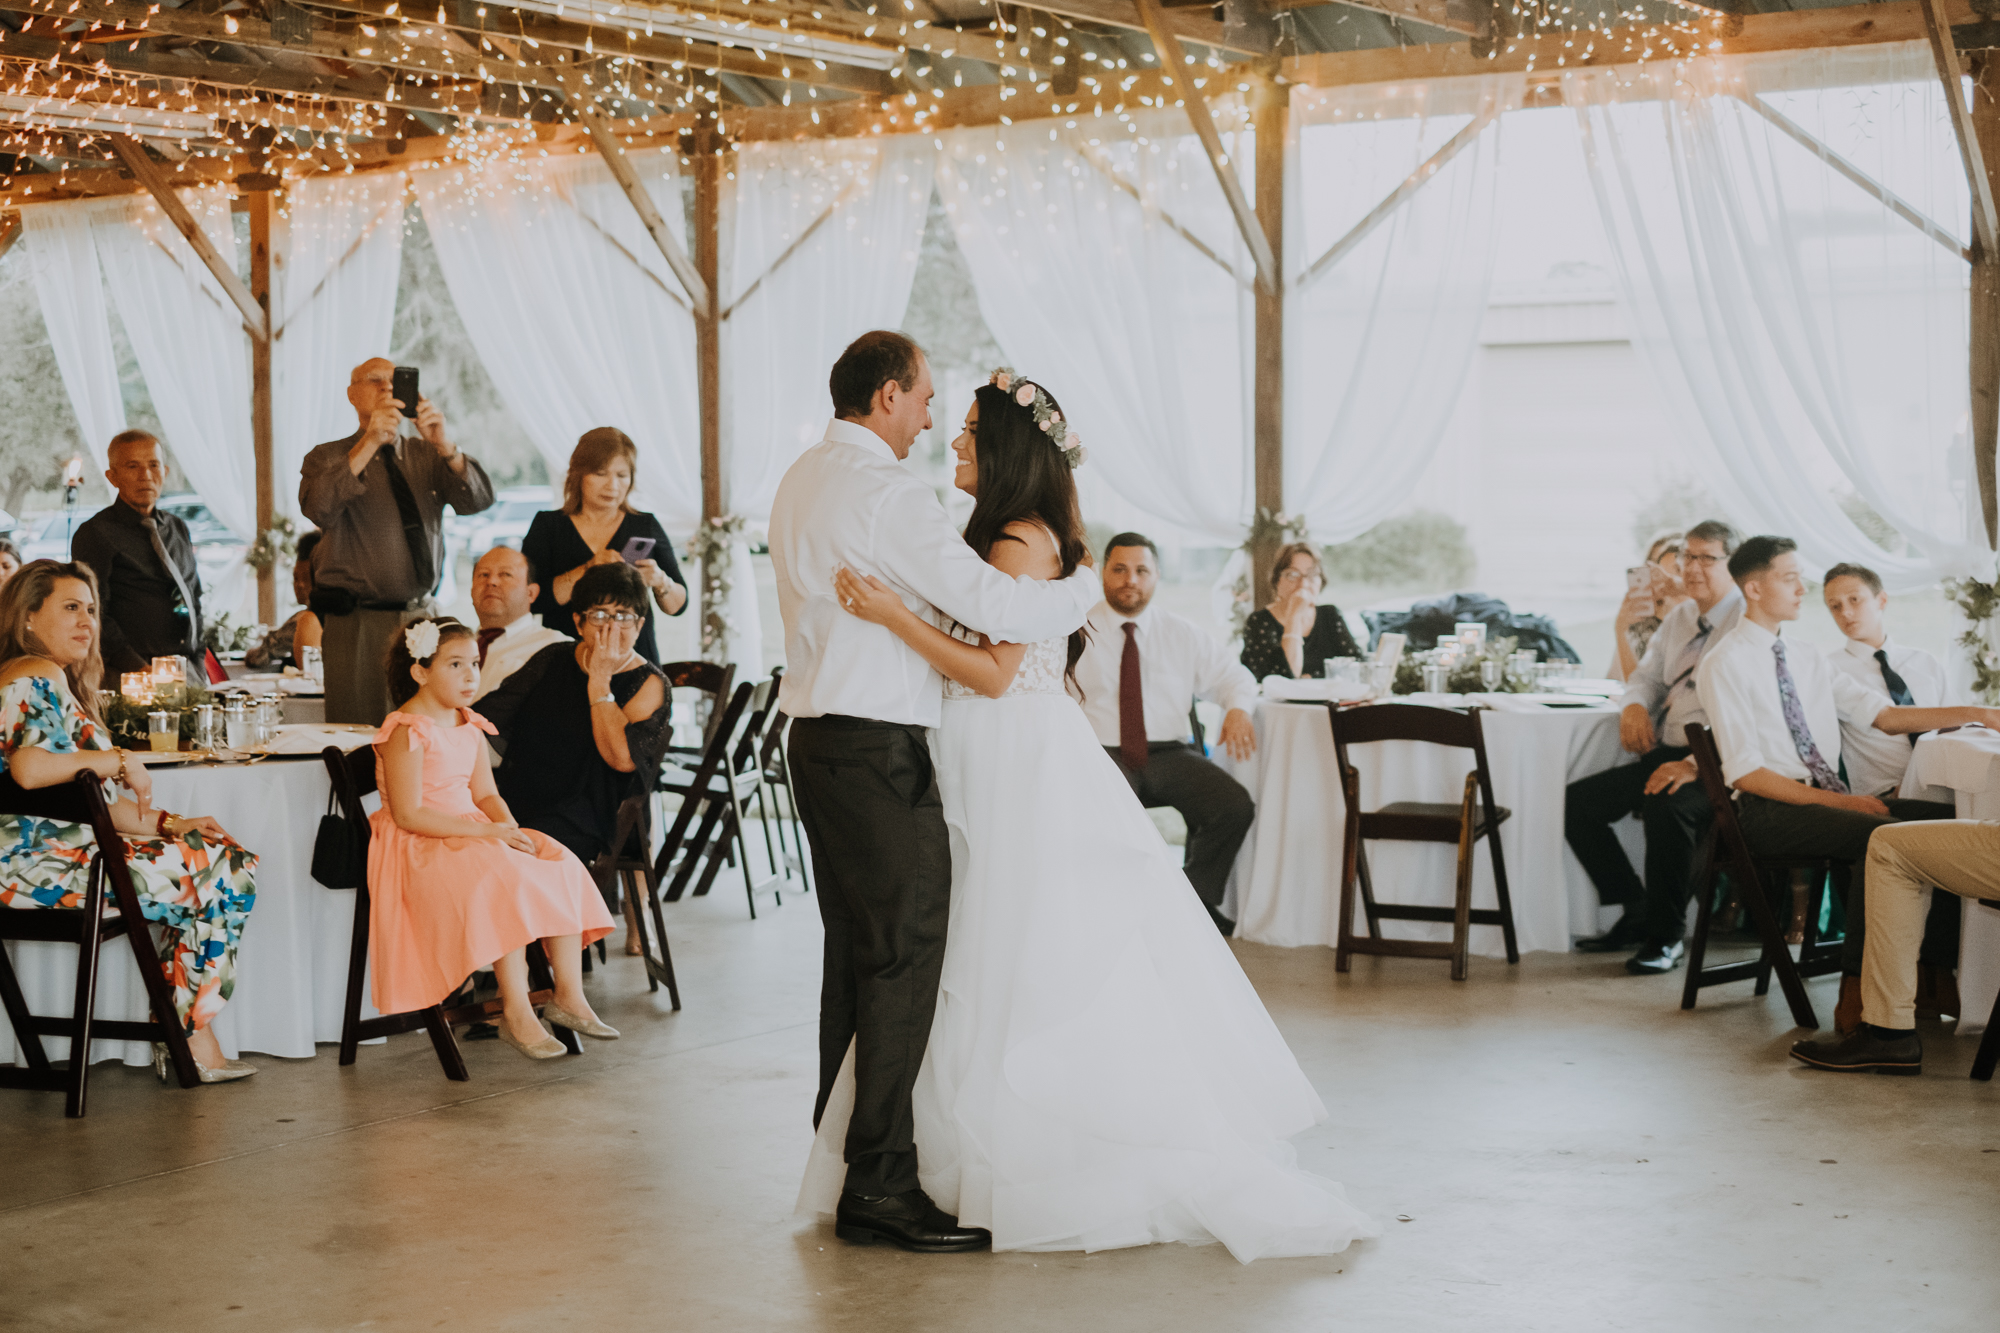 daddy daughter first dance | father daughter first dance | father daughter dance | boho wedding reception